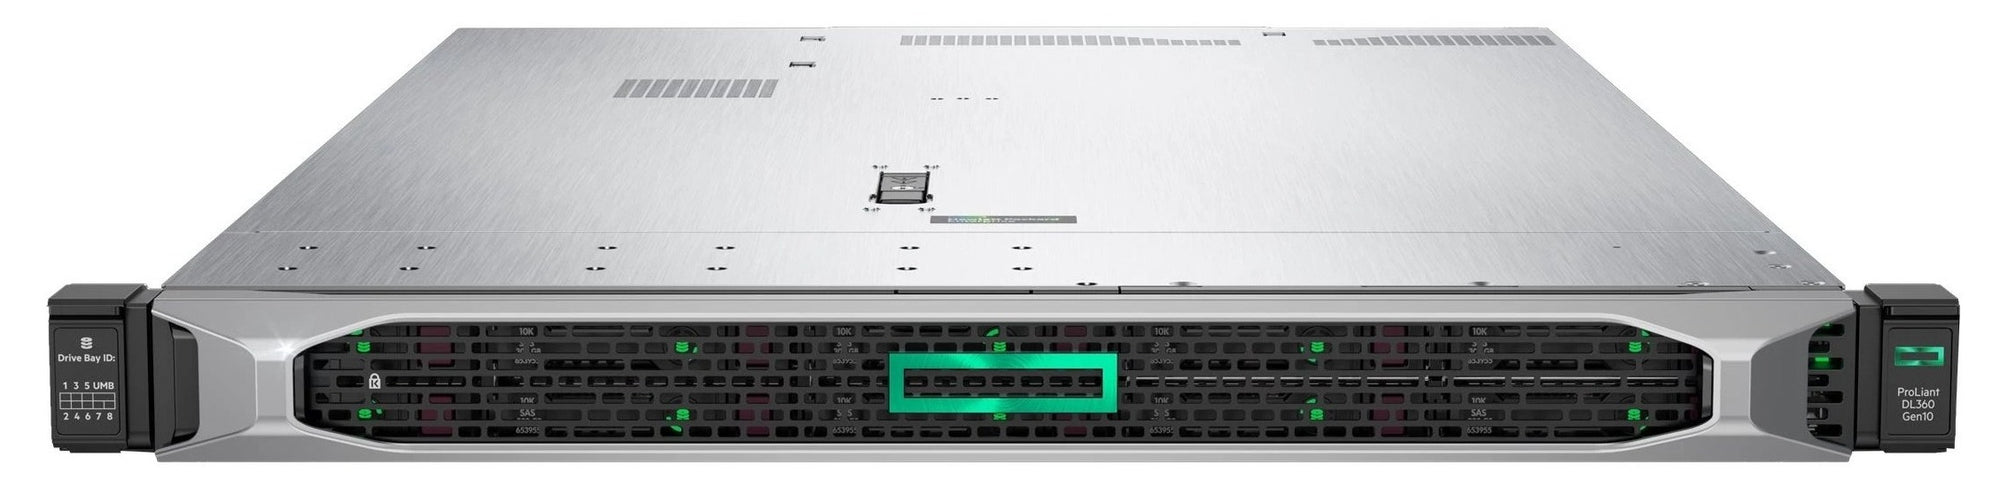 Refurbished HPE ProLiant DL360 Gen10 Configure to Order Rack Server